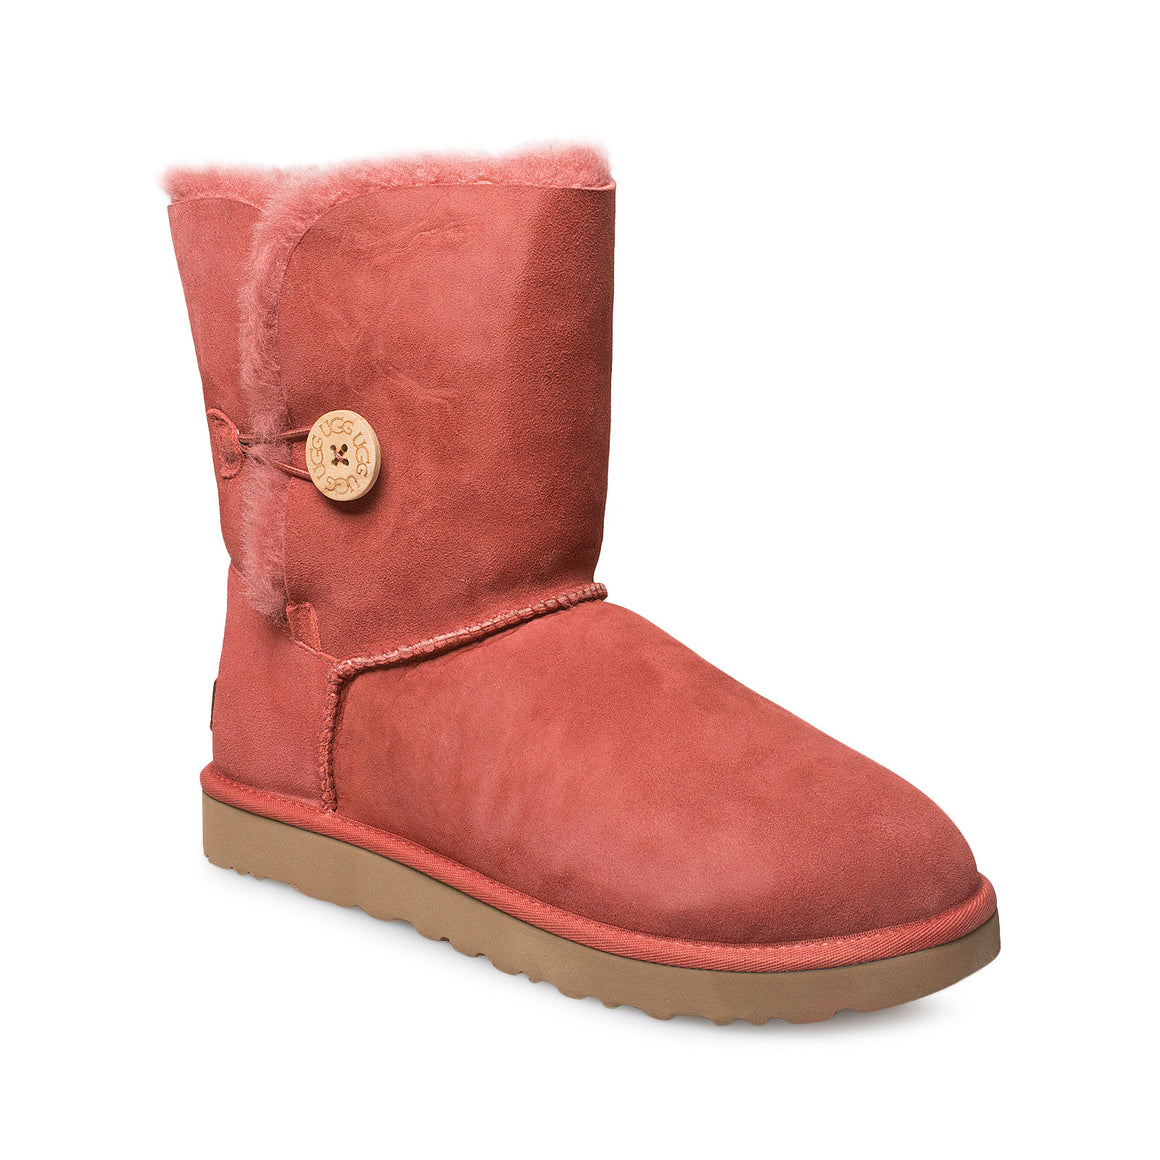 UGG Bailey Button II Terracotta Boots - Women's